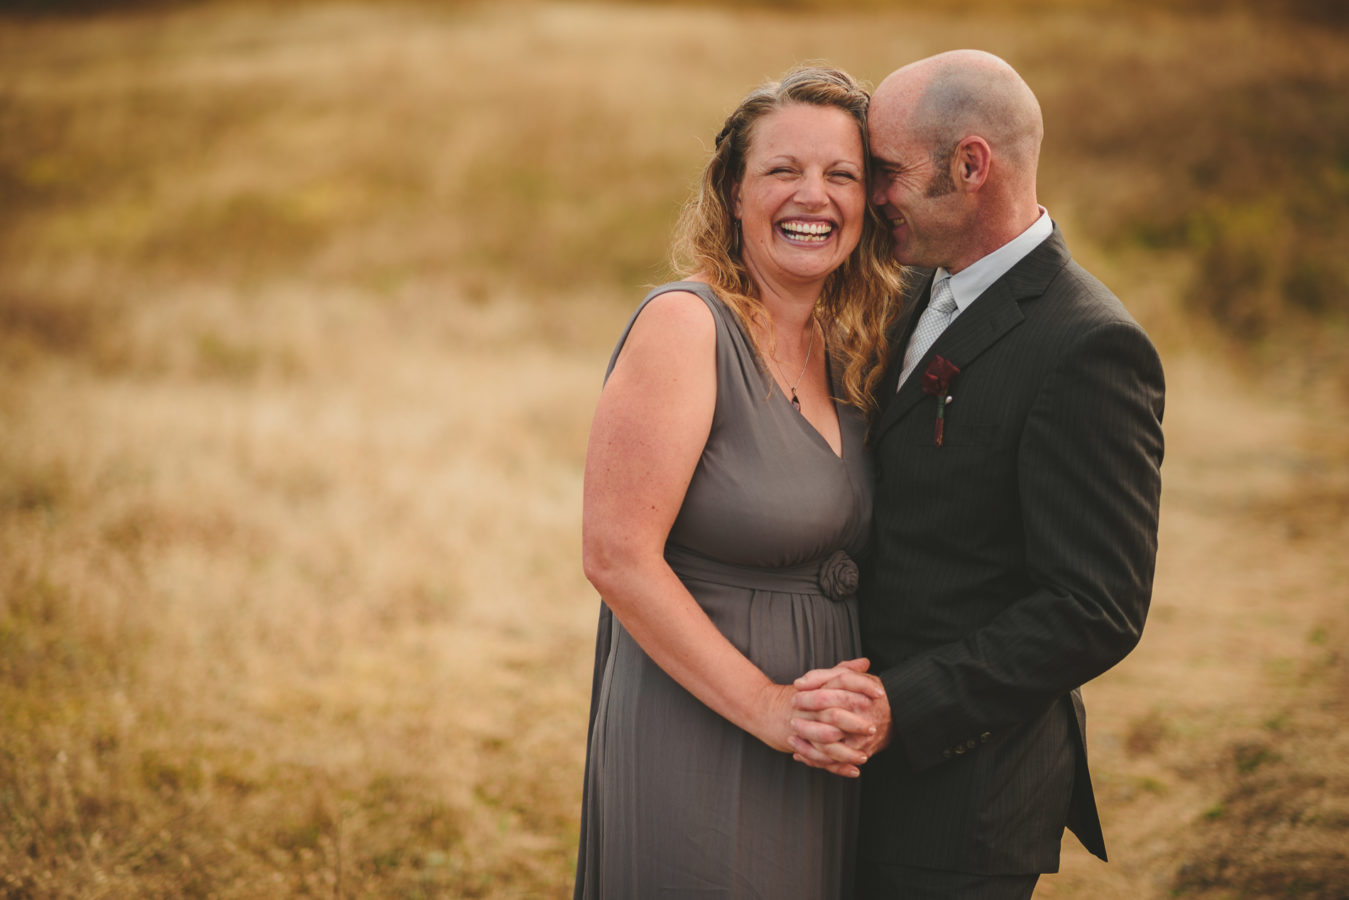 wedding couple laughing while embracing in a grassy field